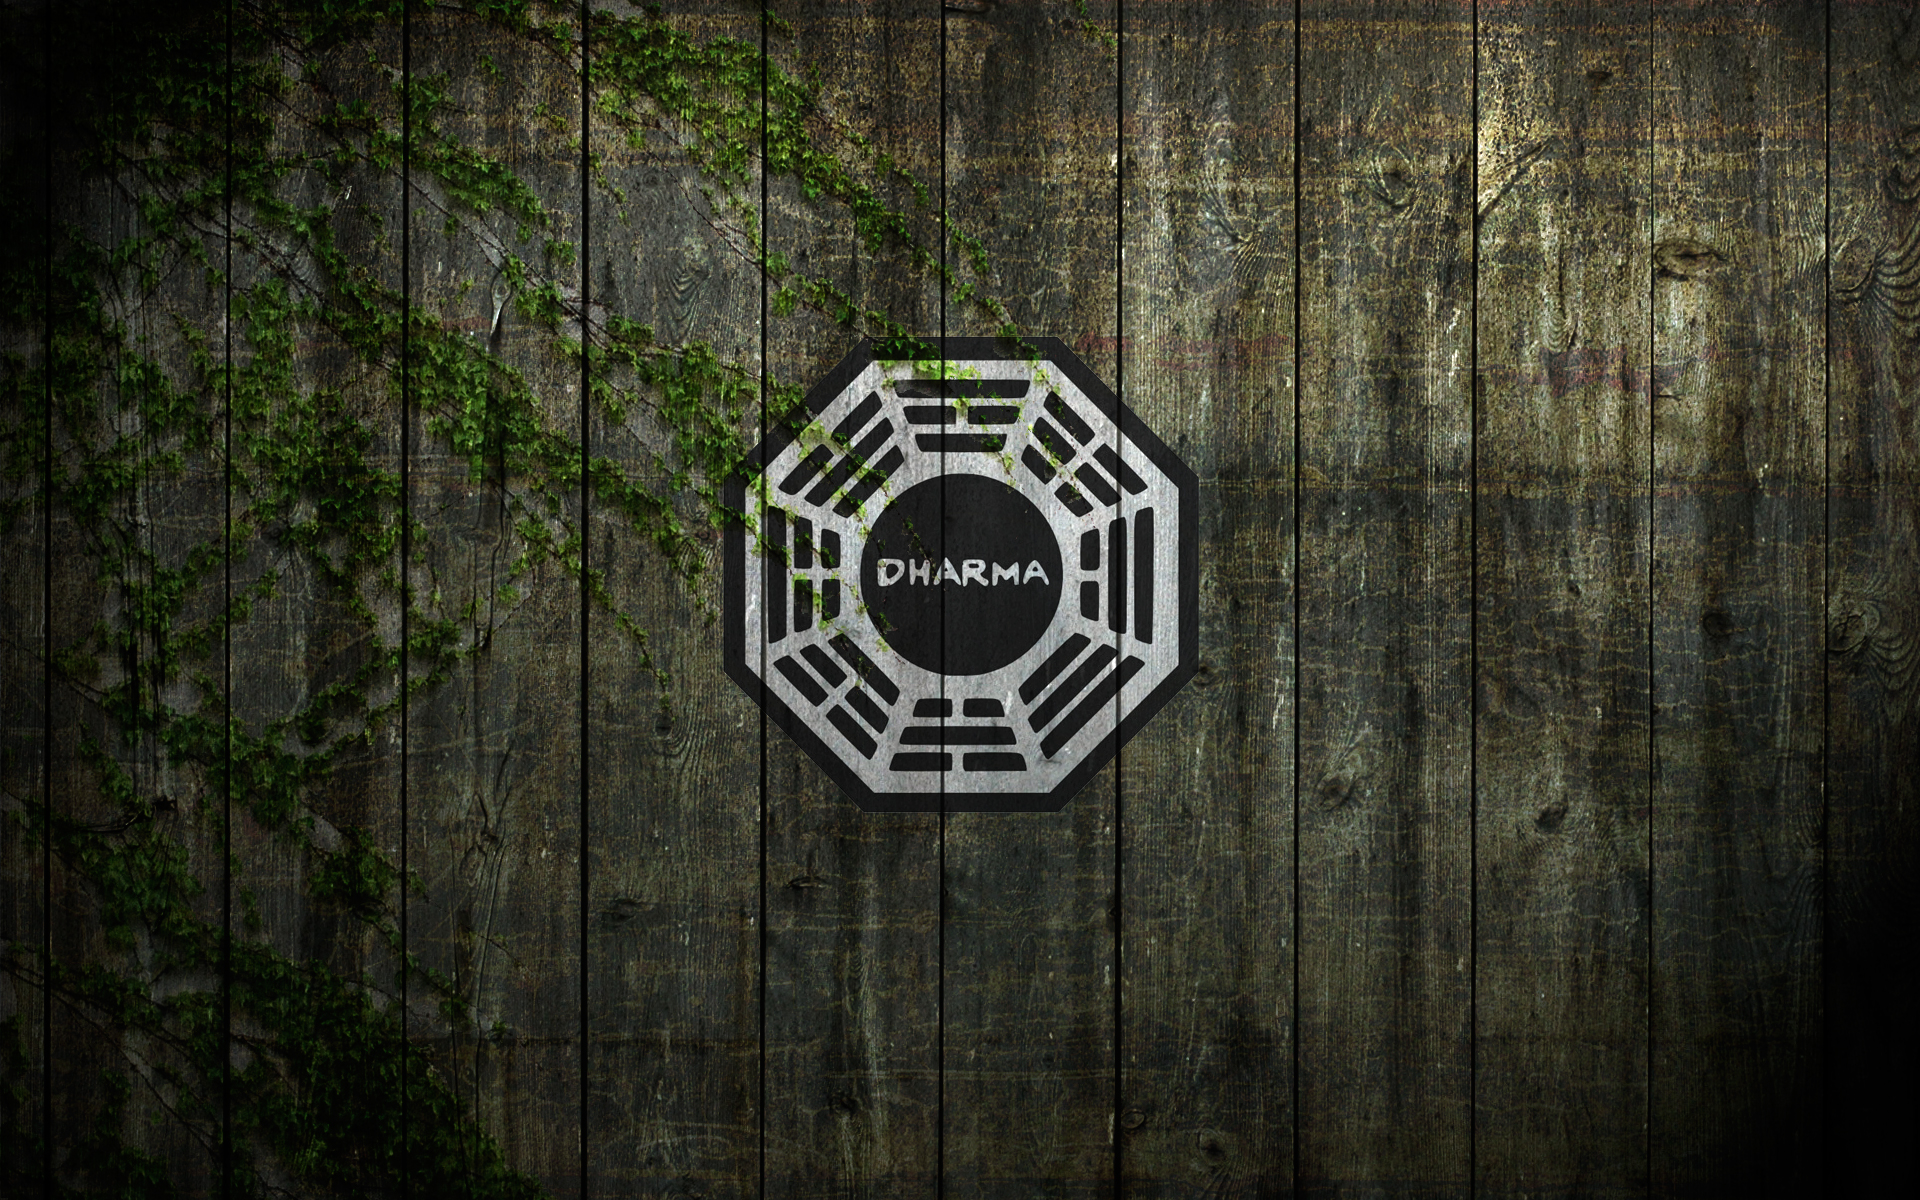 Dharma Initiative logo from Lost by kyle p. - Desktop ...